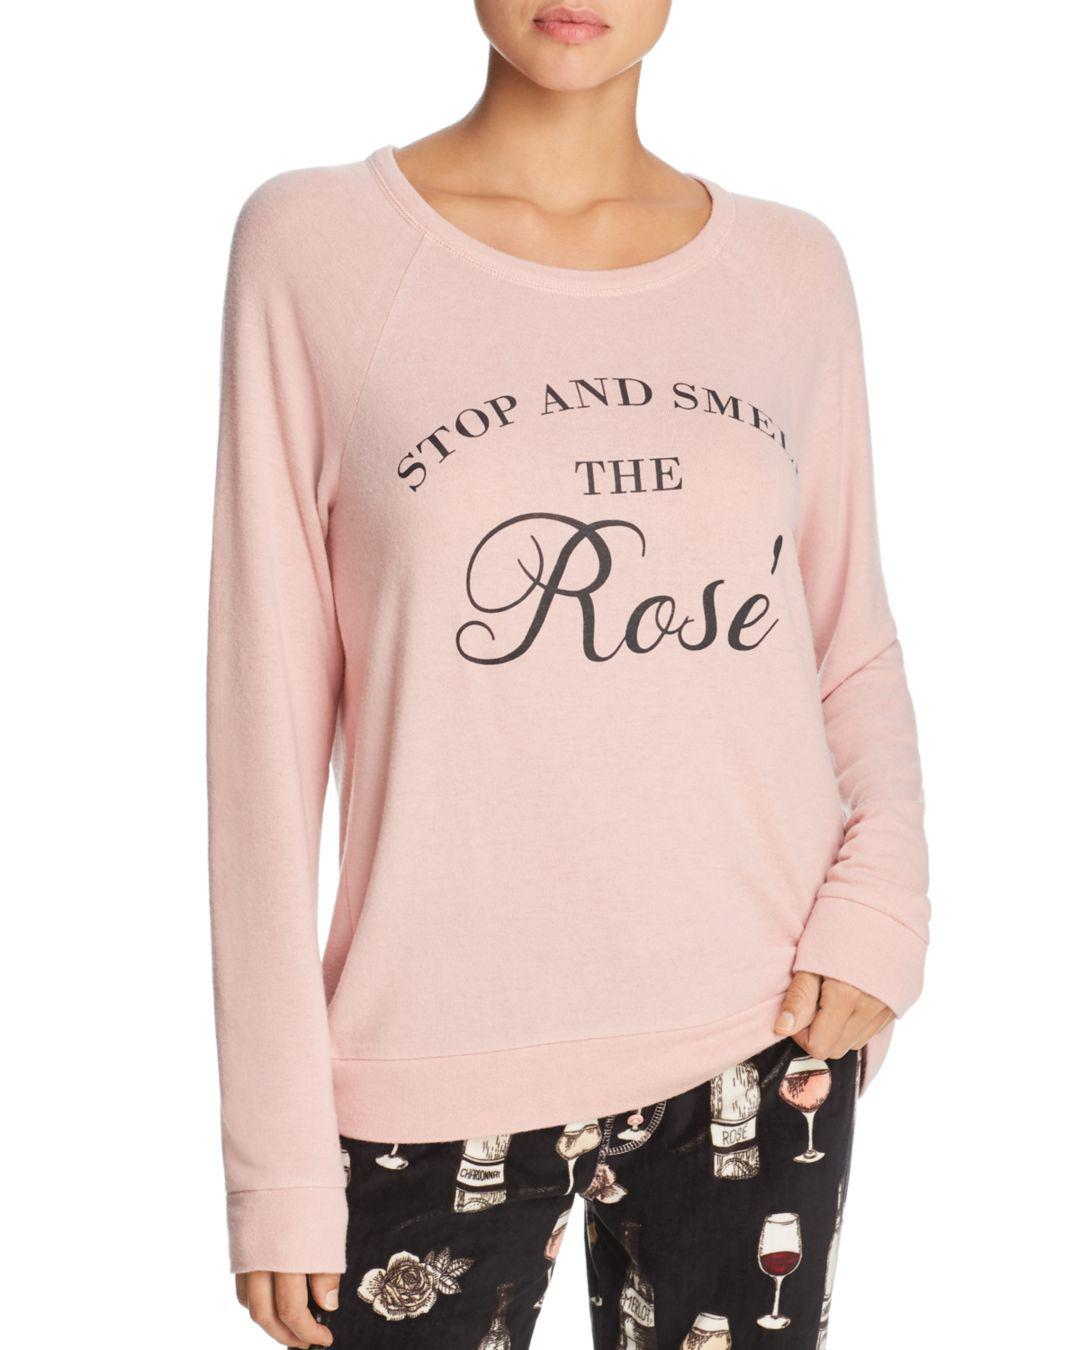 Smell The Rose Blush PJ Salvage Womens Graphic Lounge Long Sleeve Crewneck Top Medium